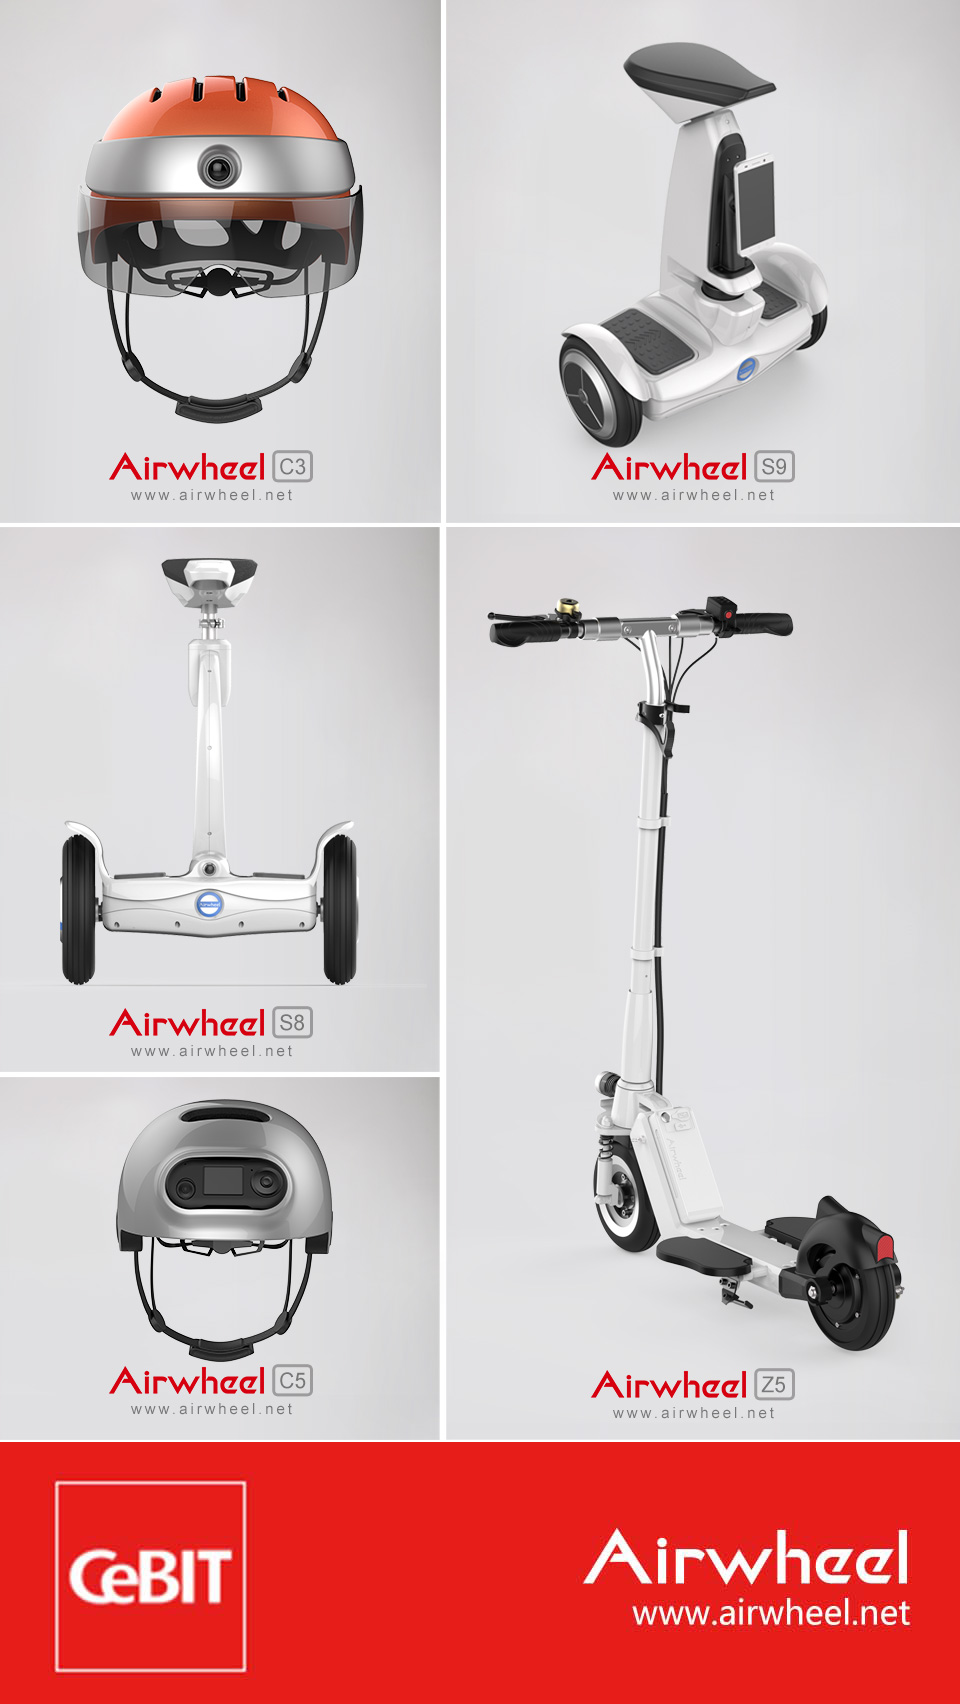 saddle-equipped scooter airwheel s8